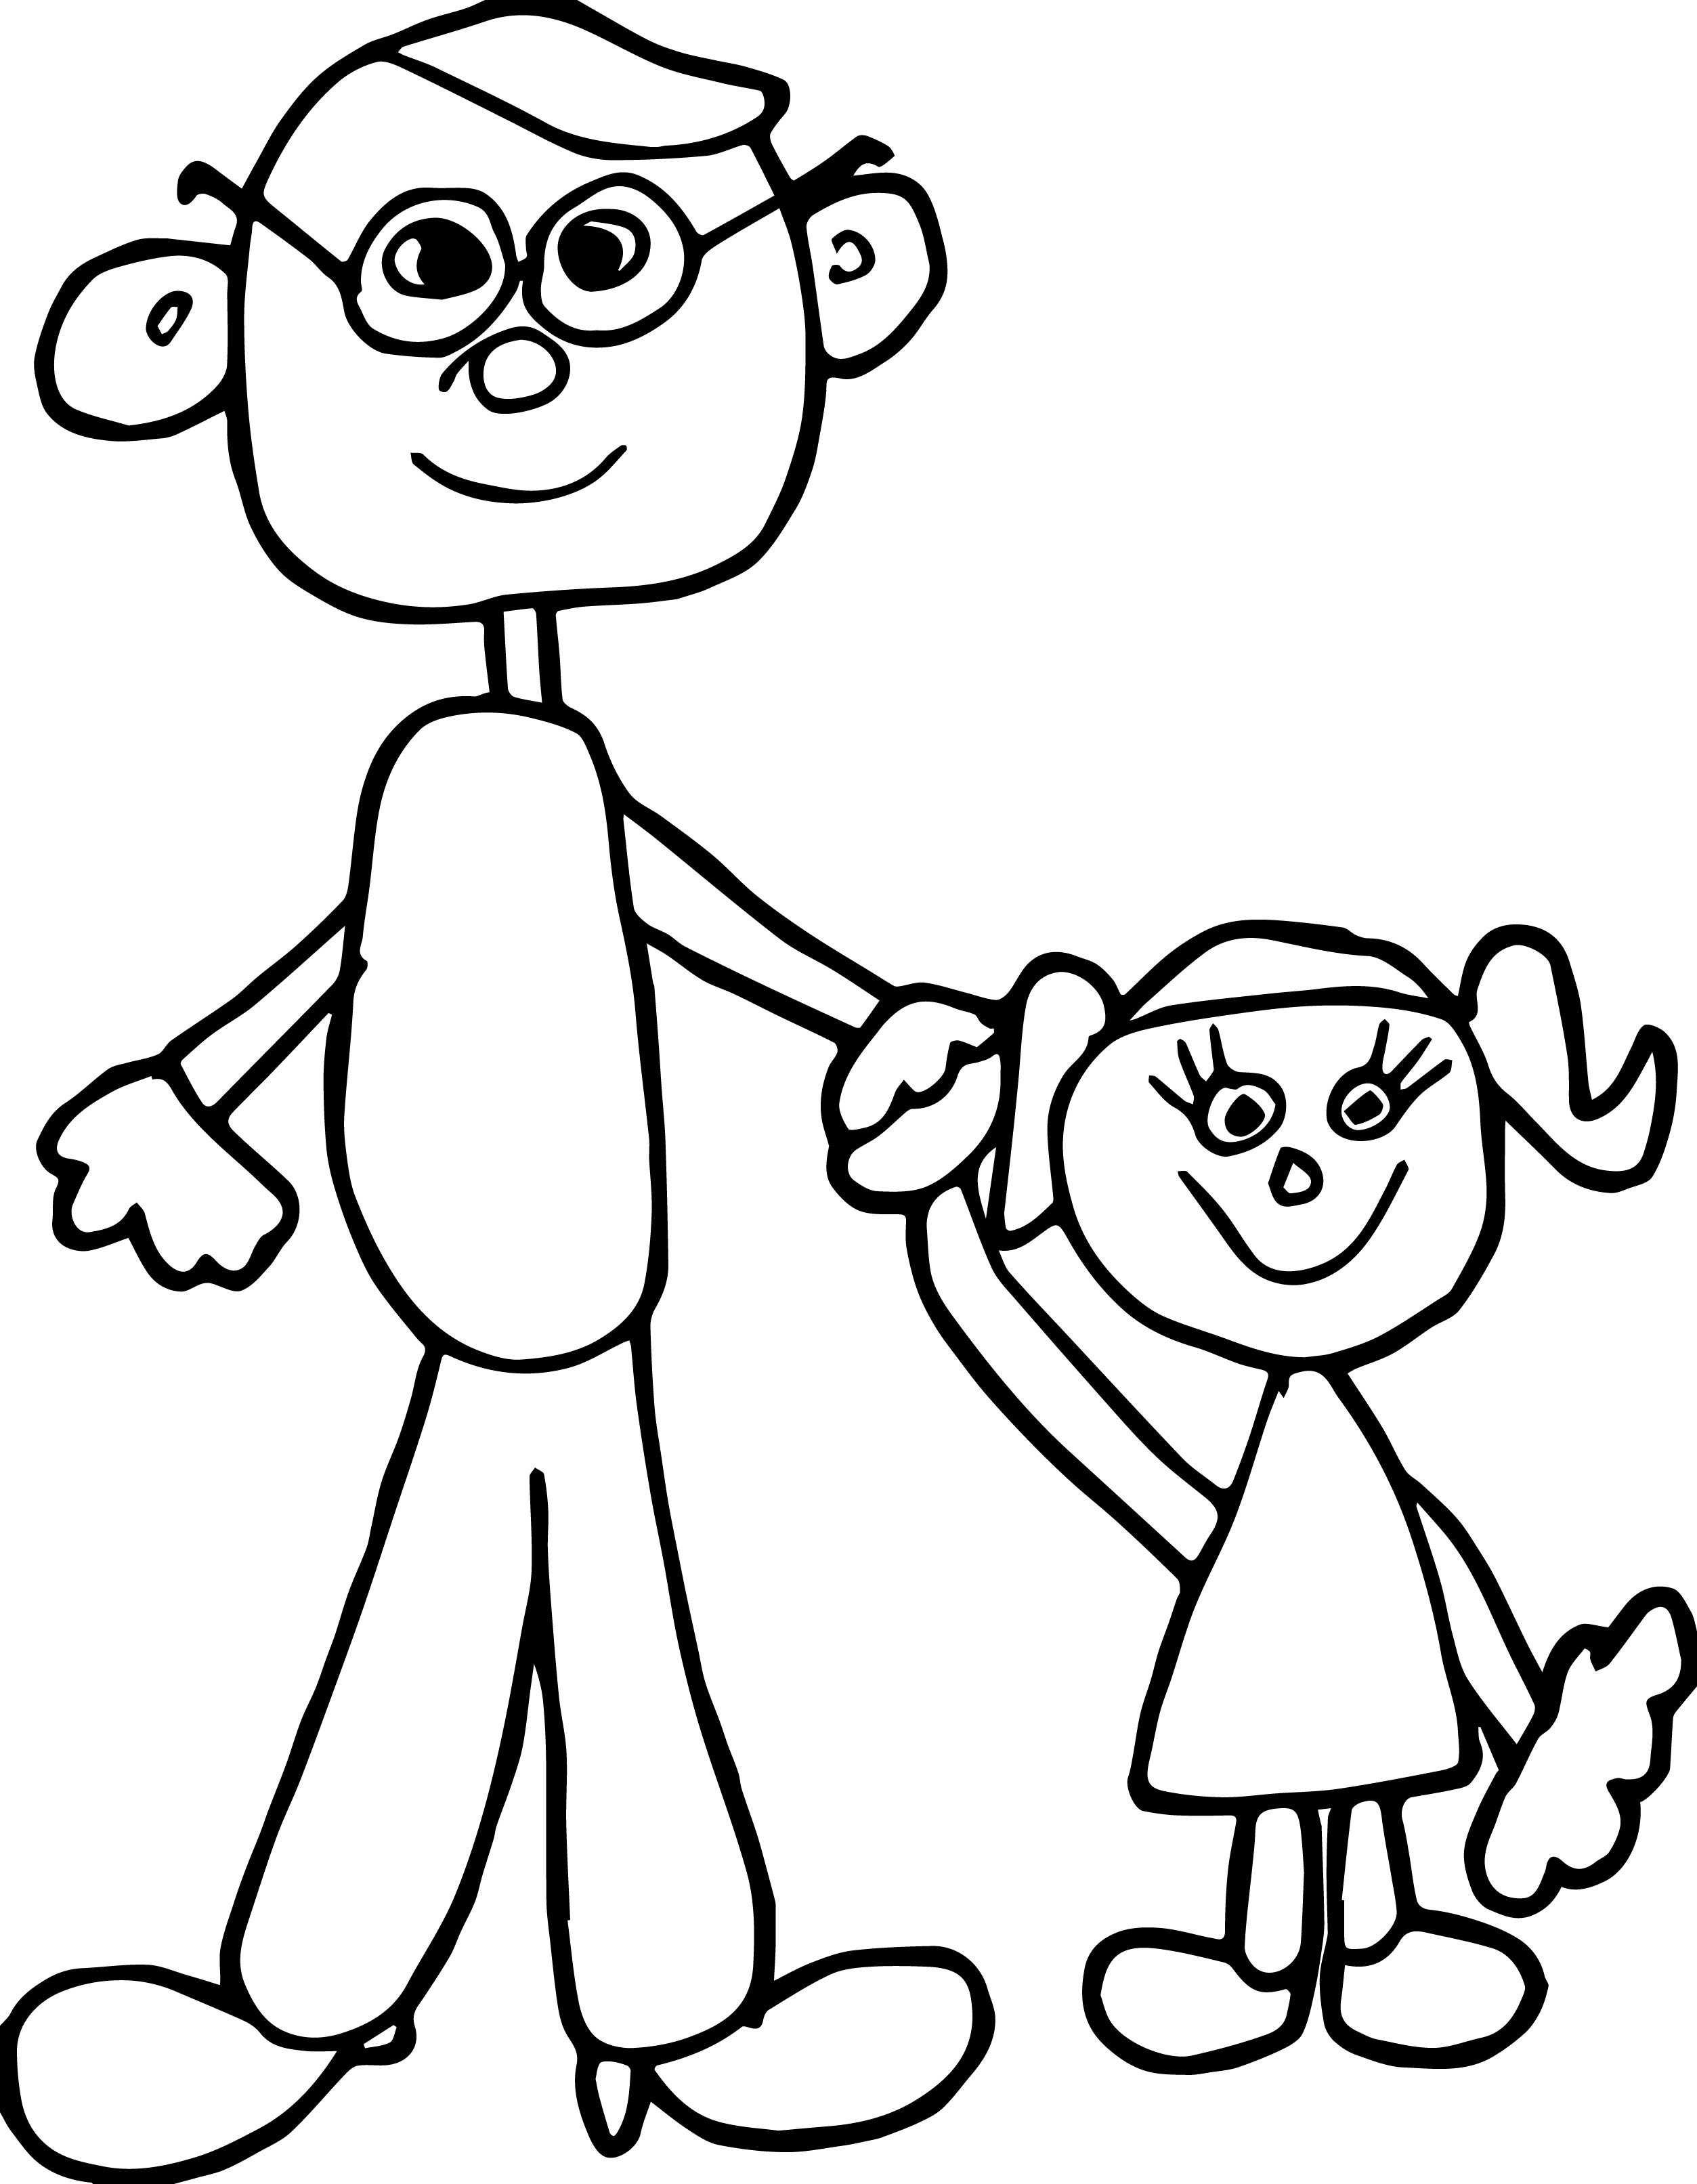 Adult And Girl Coloring Page